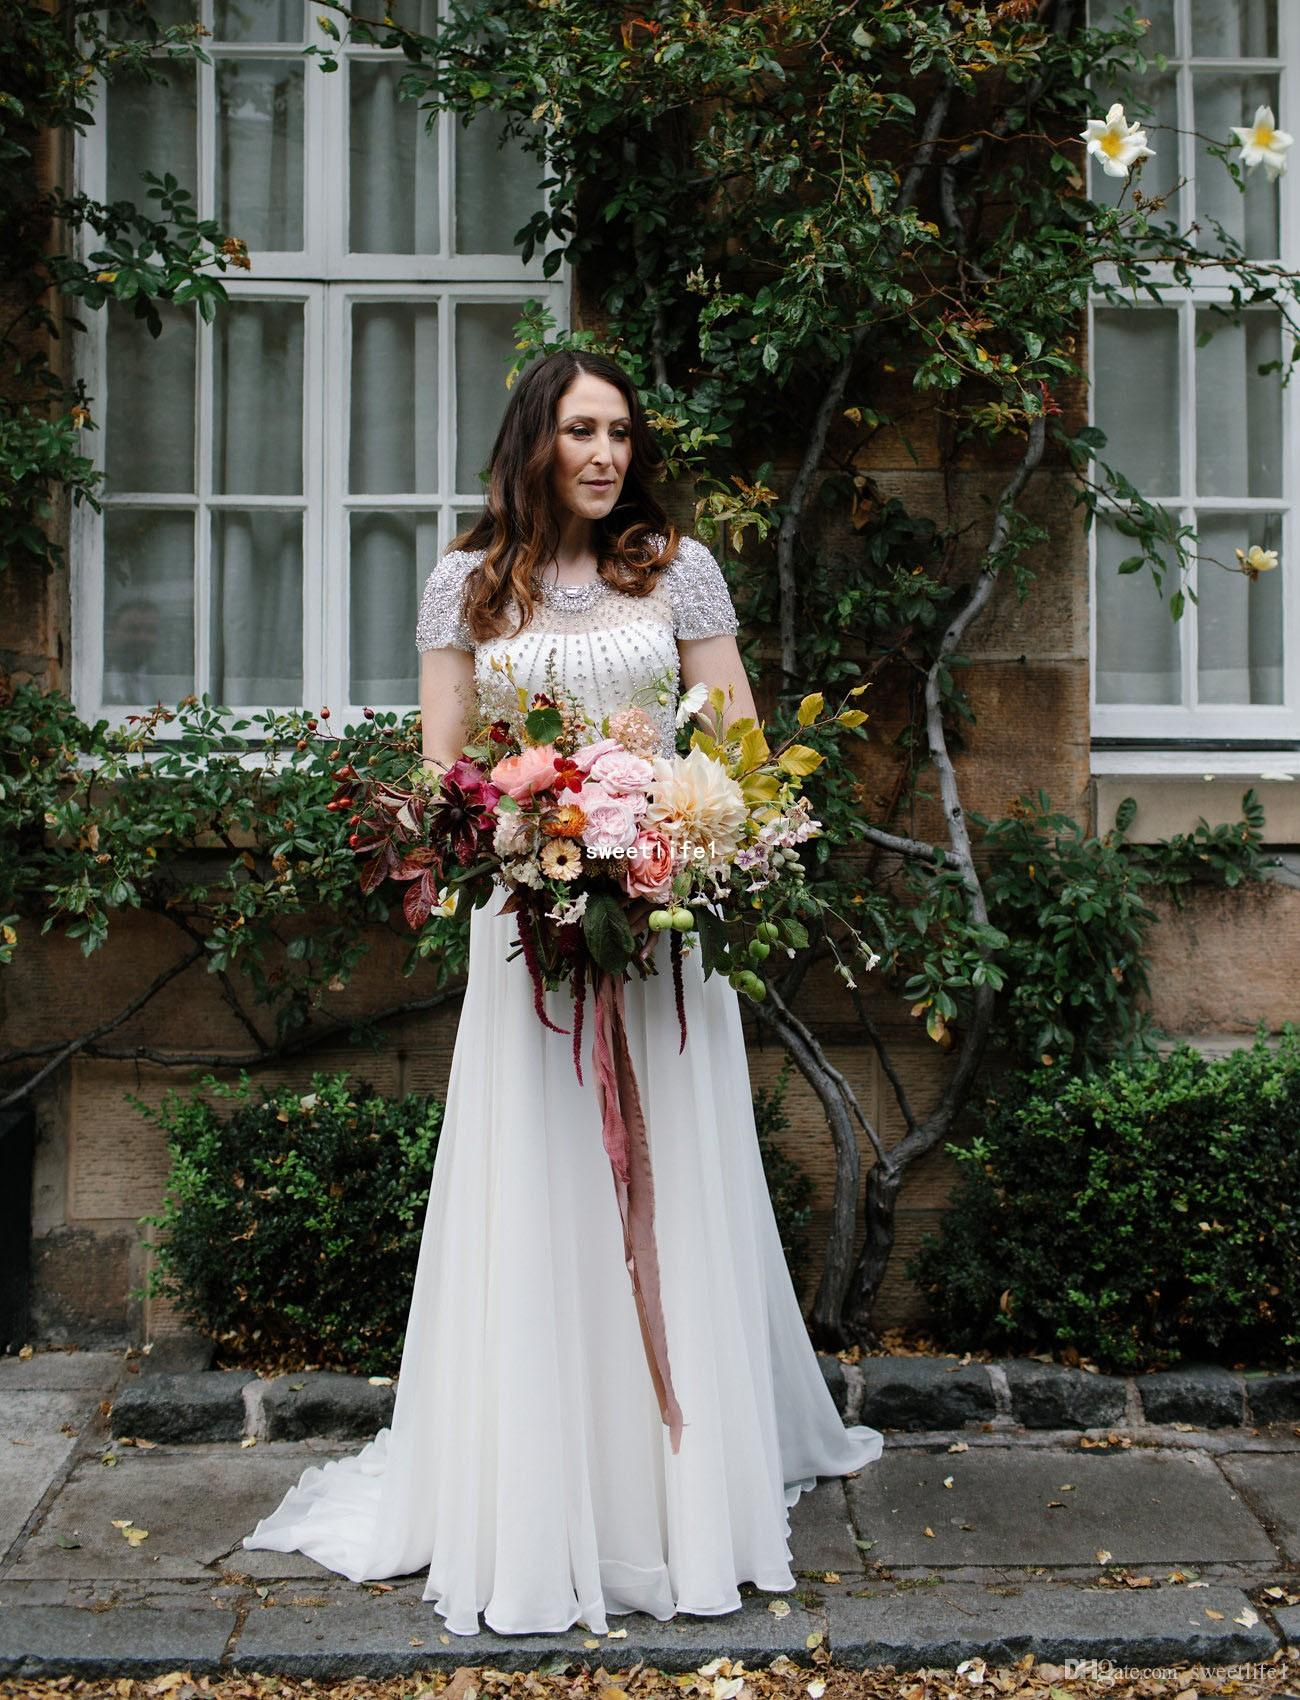 2019 Garden Wedding Dresses Shining Rhinestones Beaded See Though Back Zipper Back A Line Short Sleeve Fairytale Outdoor Bridal Gown